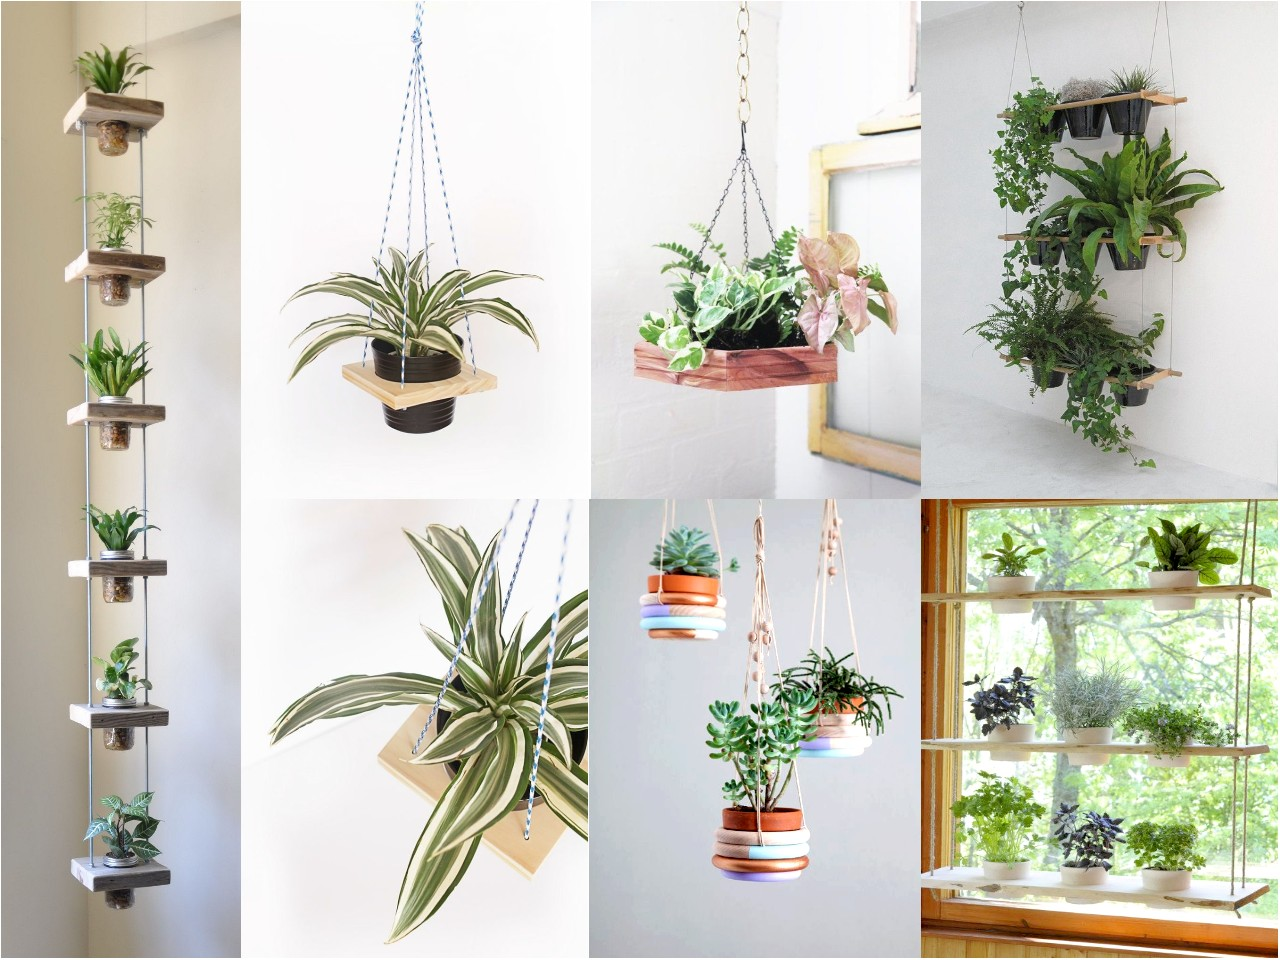 10 ideas de decoraci n con plantas colgantes for Muebles para plantas